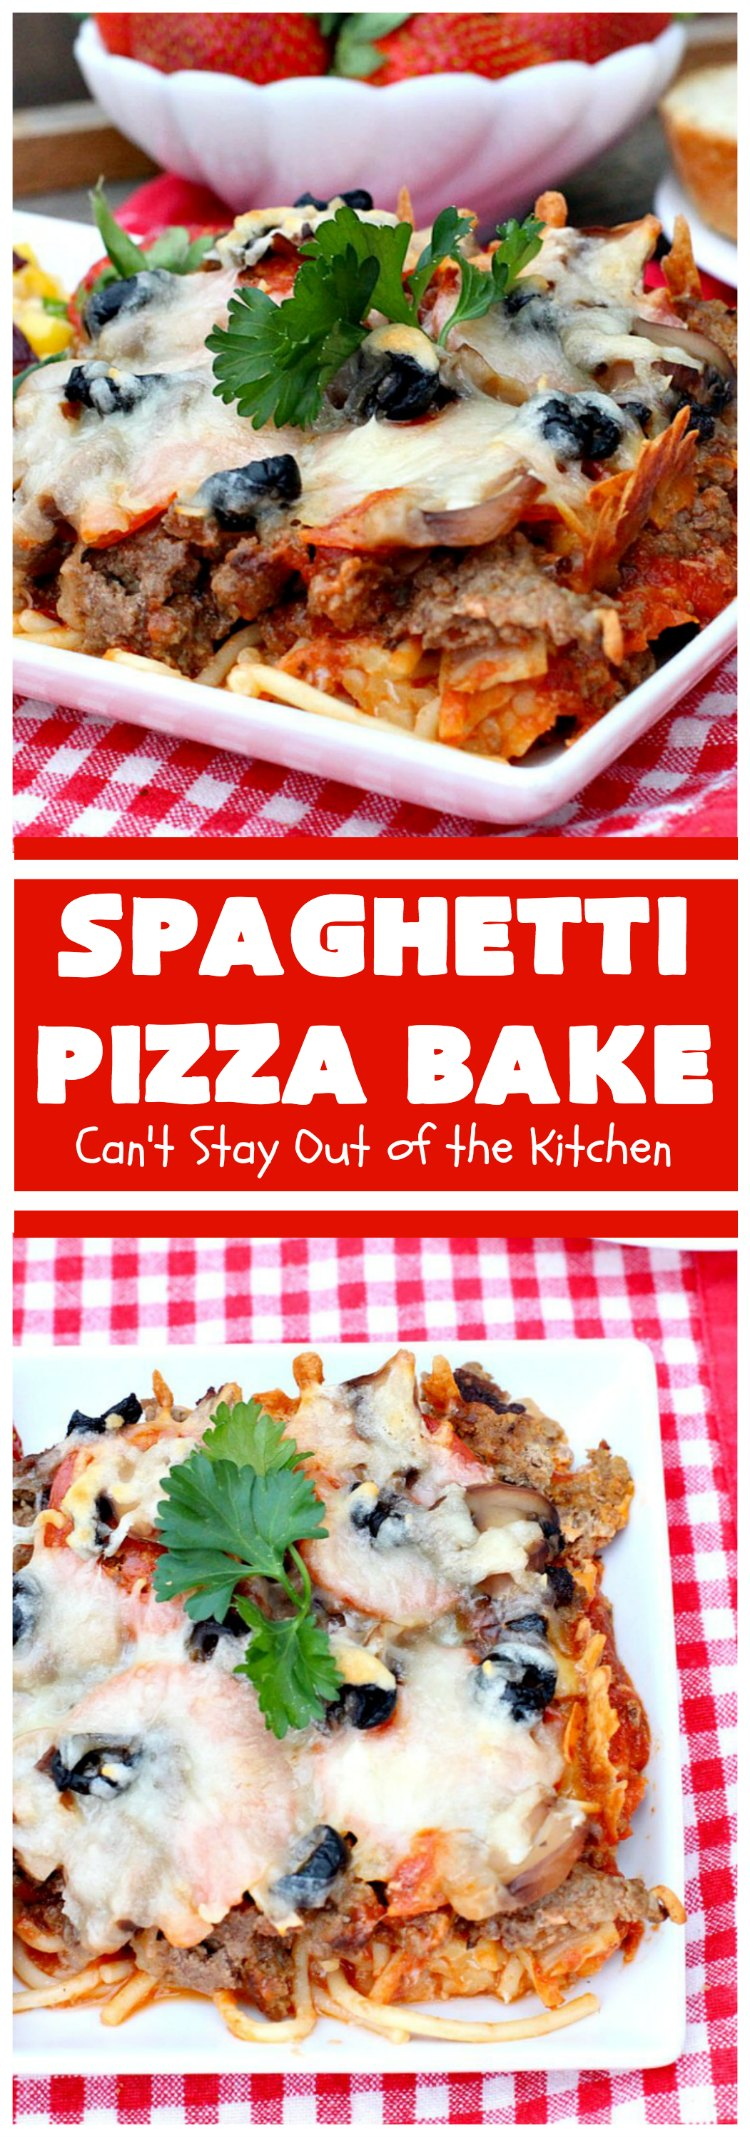 Spaghetti Pizza Bake   Can't Stay Out of the Kitchen   this fantastic #casserole combines the best of #spaghetti with the best of #pizza! It's kid-friendly and great for company since it makes a lot. #GroundBeef #olives #pepperoni #pasta #mushrooms #MozzarellaCheese #SpaghettiPizzaBake #Italian